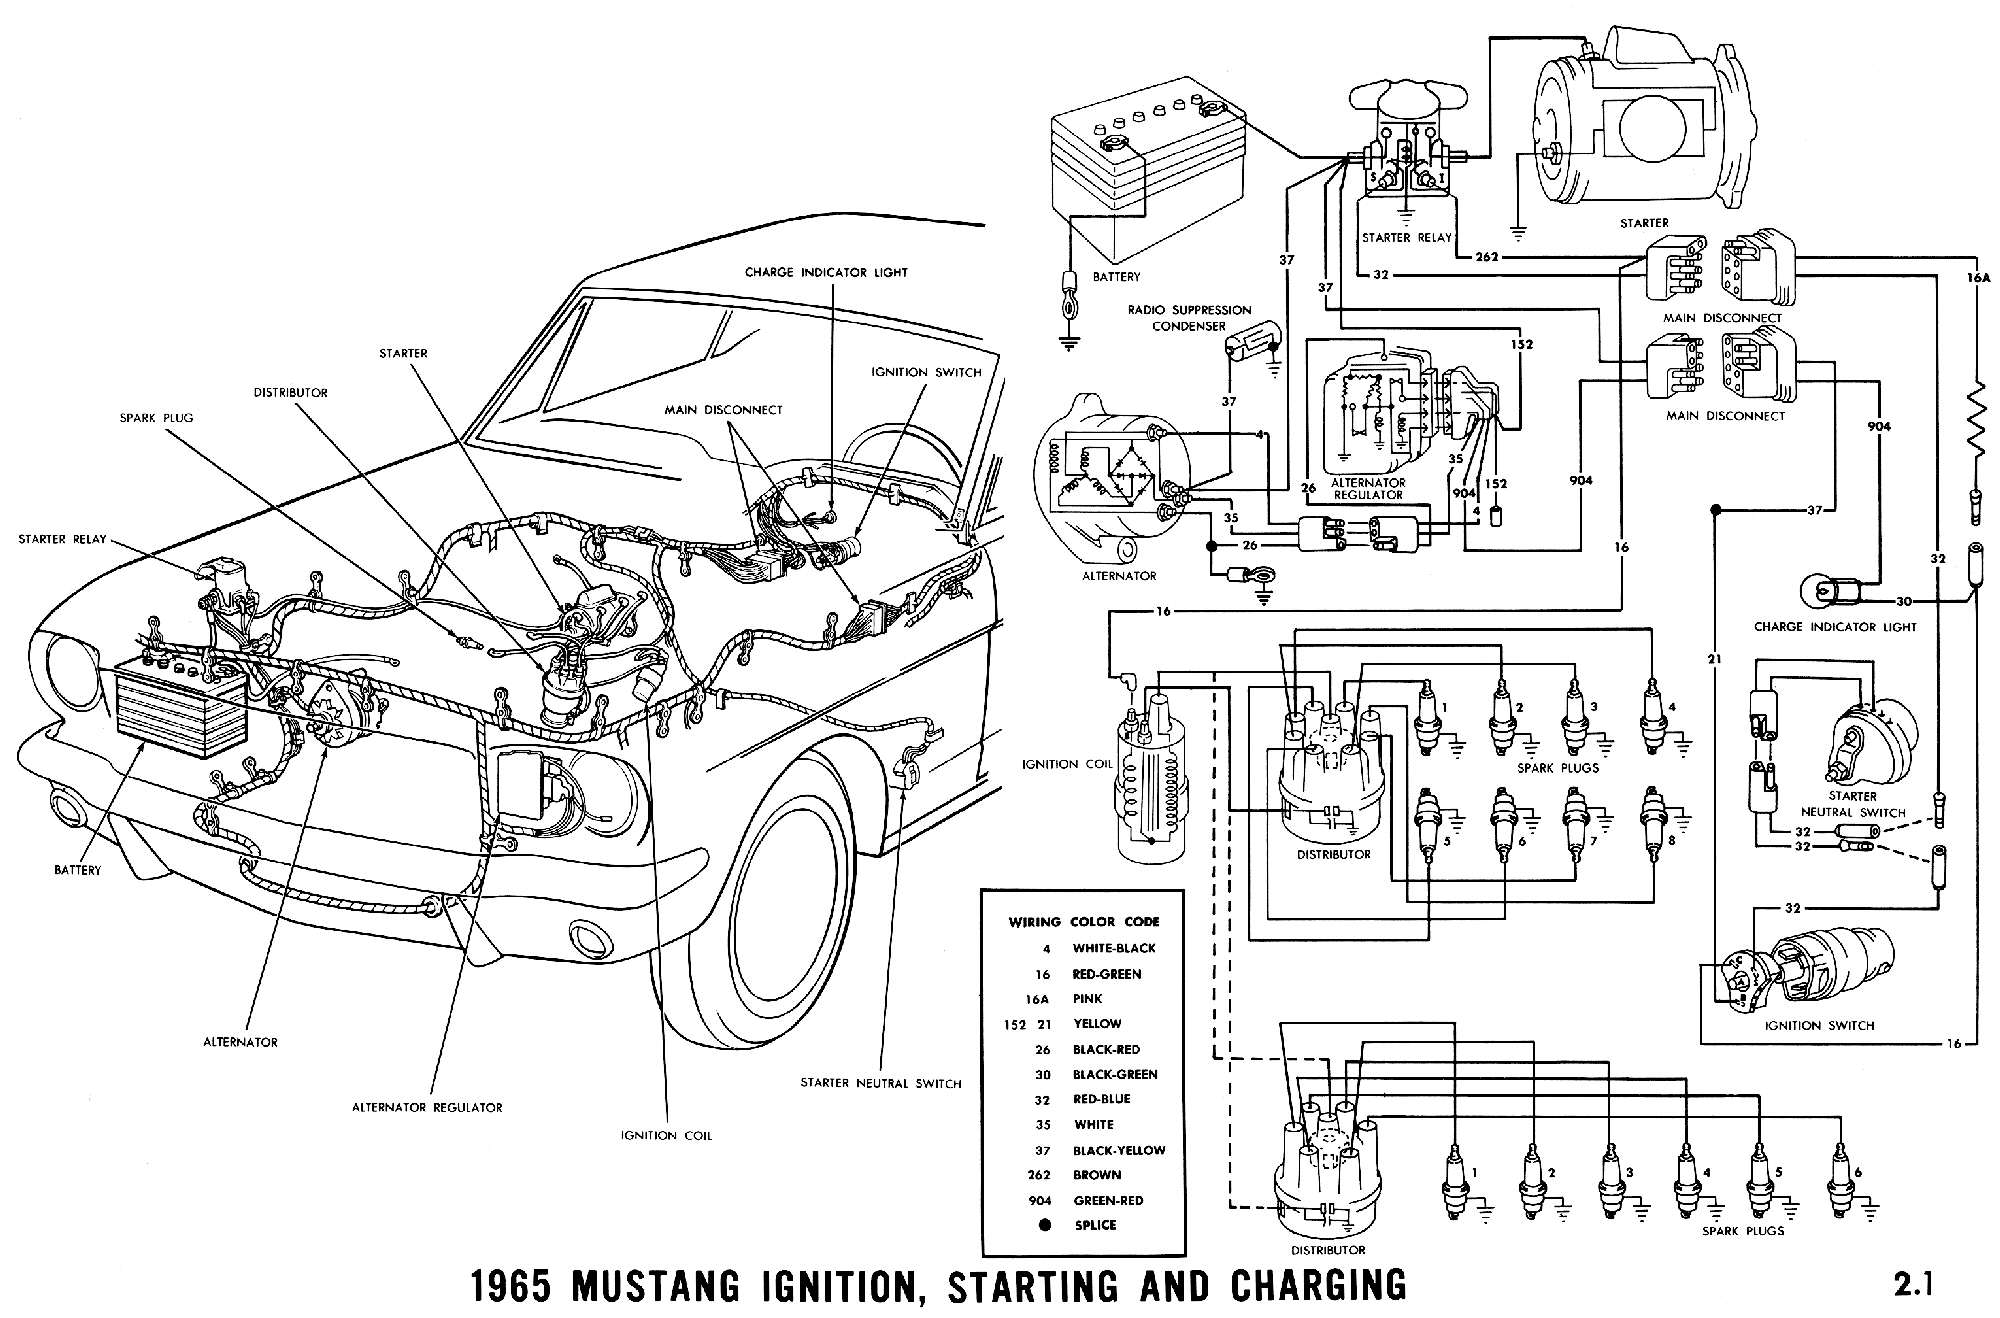 1965c 1965 mustang wiring diagrams average joe restoration 1965 ford mustang wiring diagrams at crackthecode.co